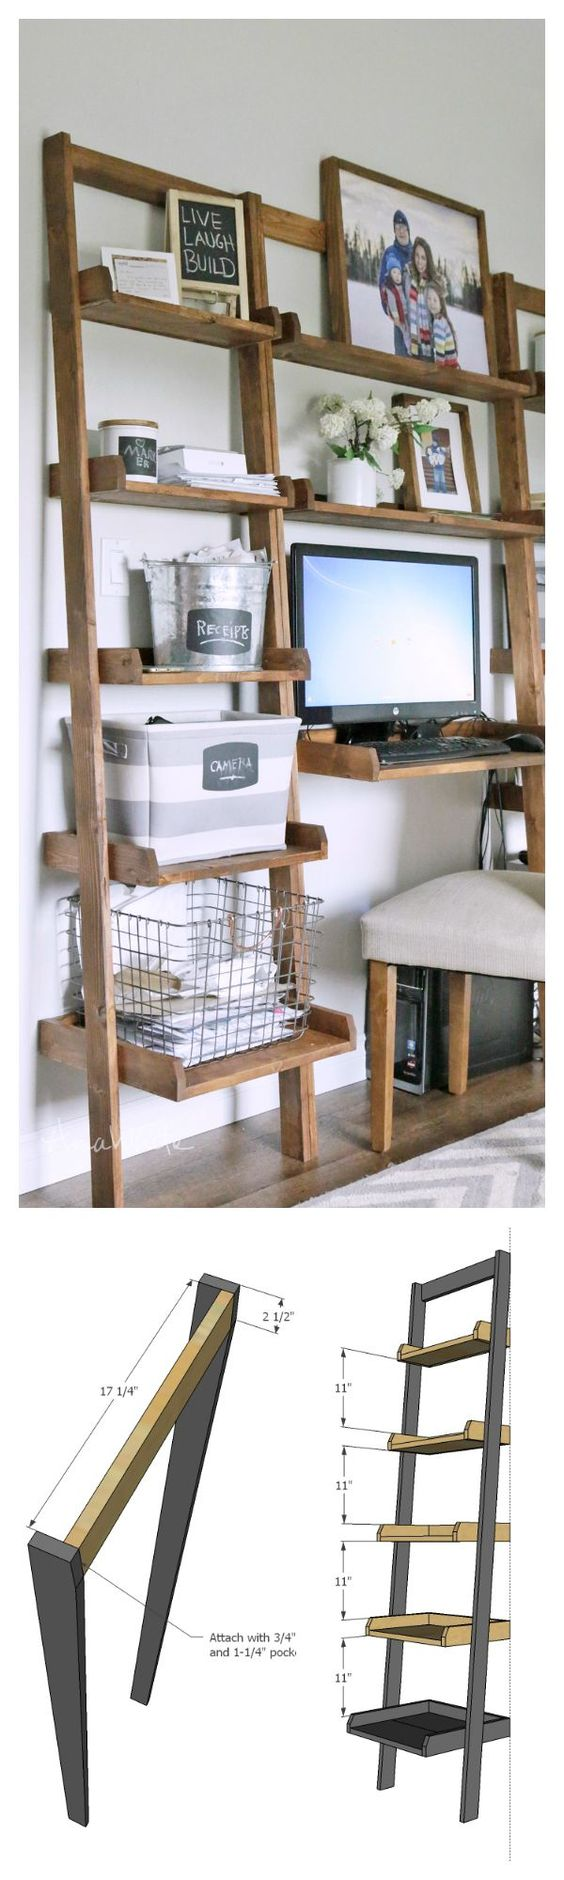 diy shelf- leaning ladder wall bookshelf made from 1x boards desk plans too: